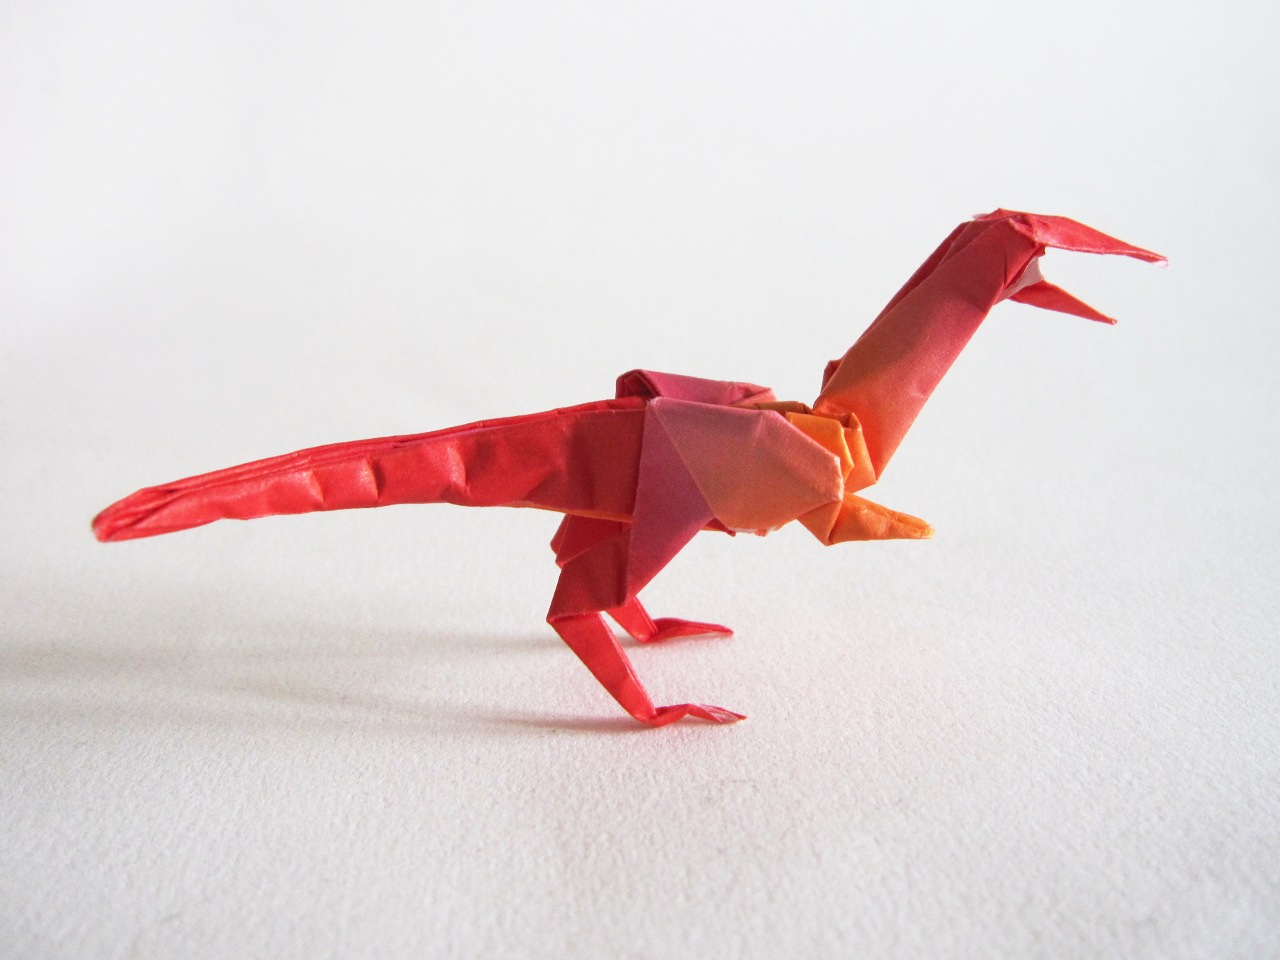 Diagrami - Velociraptor - photo#25